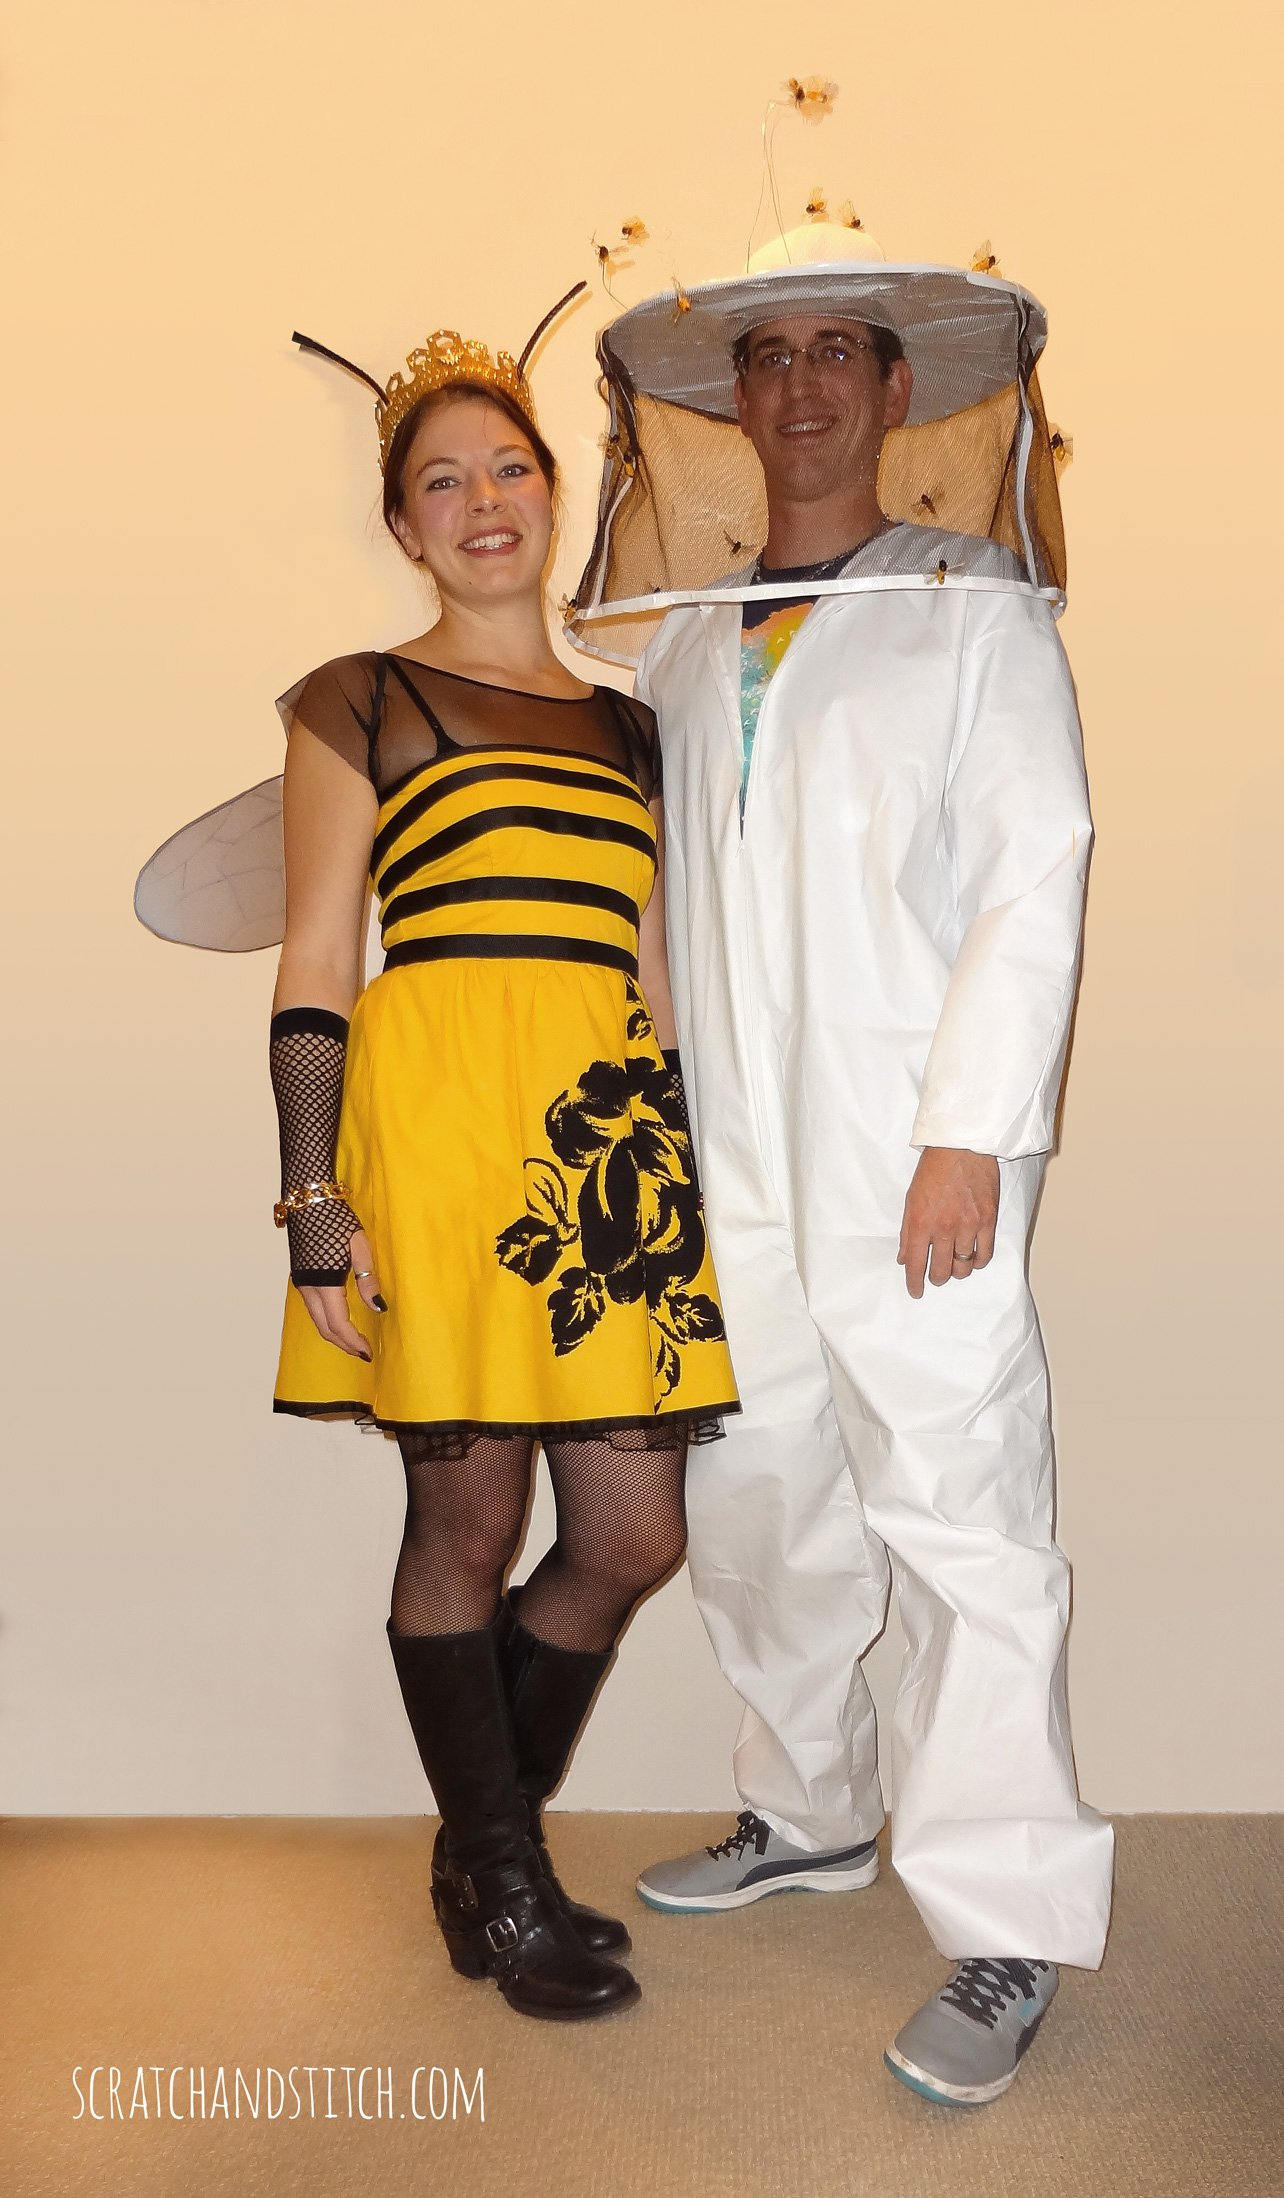 Queen Bee Costume u0026 Beekeeper Costume DIY - scratchandstitch.com  sc 1 st  Scratch and Stitch & Queen Bee Costume u0026 Beekeeper Costume